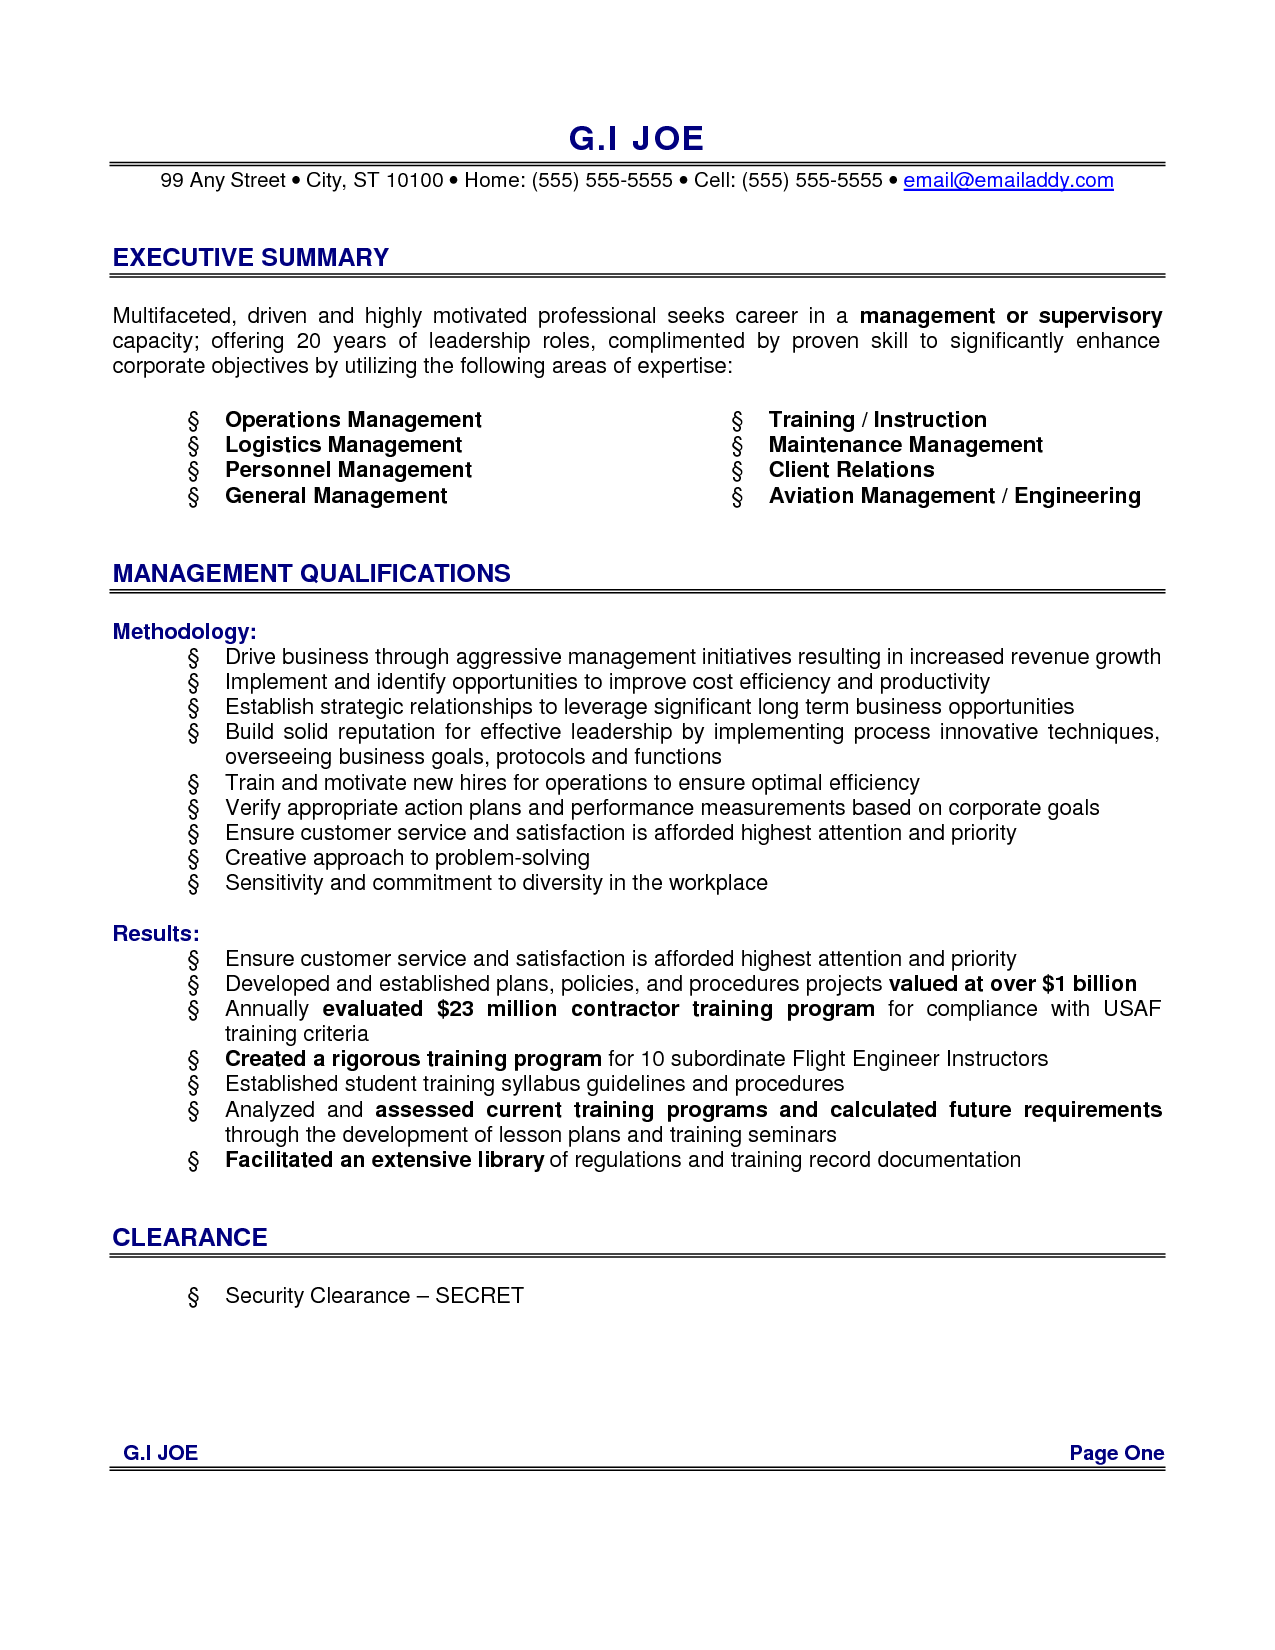 resume Management Qualifications For Resume resume examples for executive summary with management qualifications example as writing guidelines